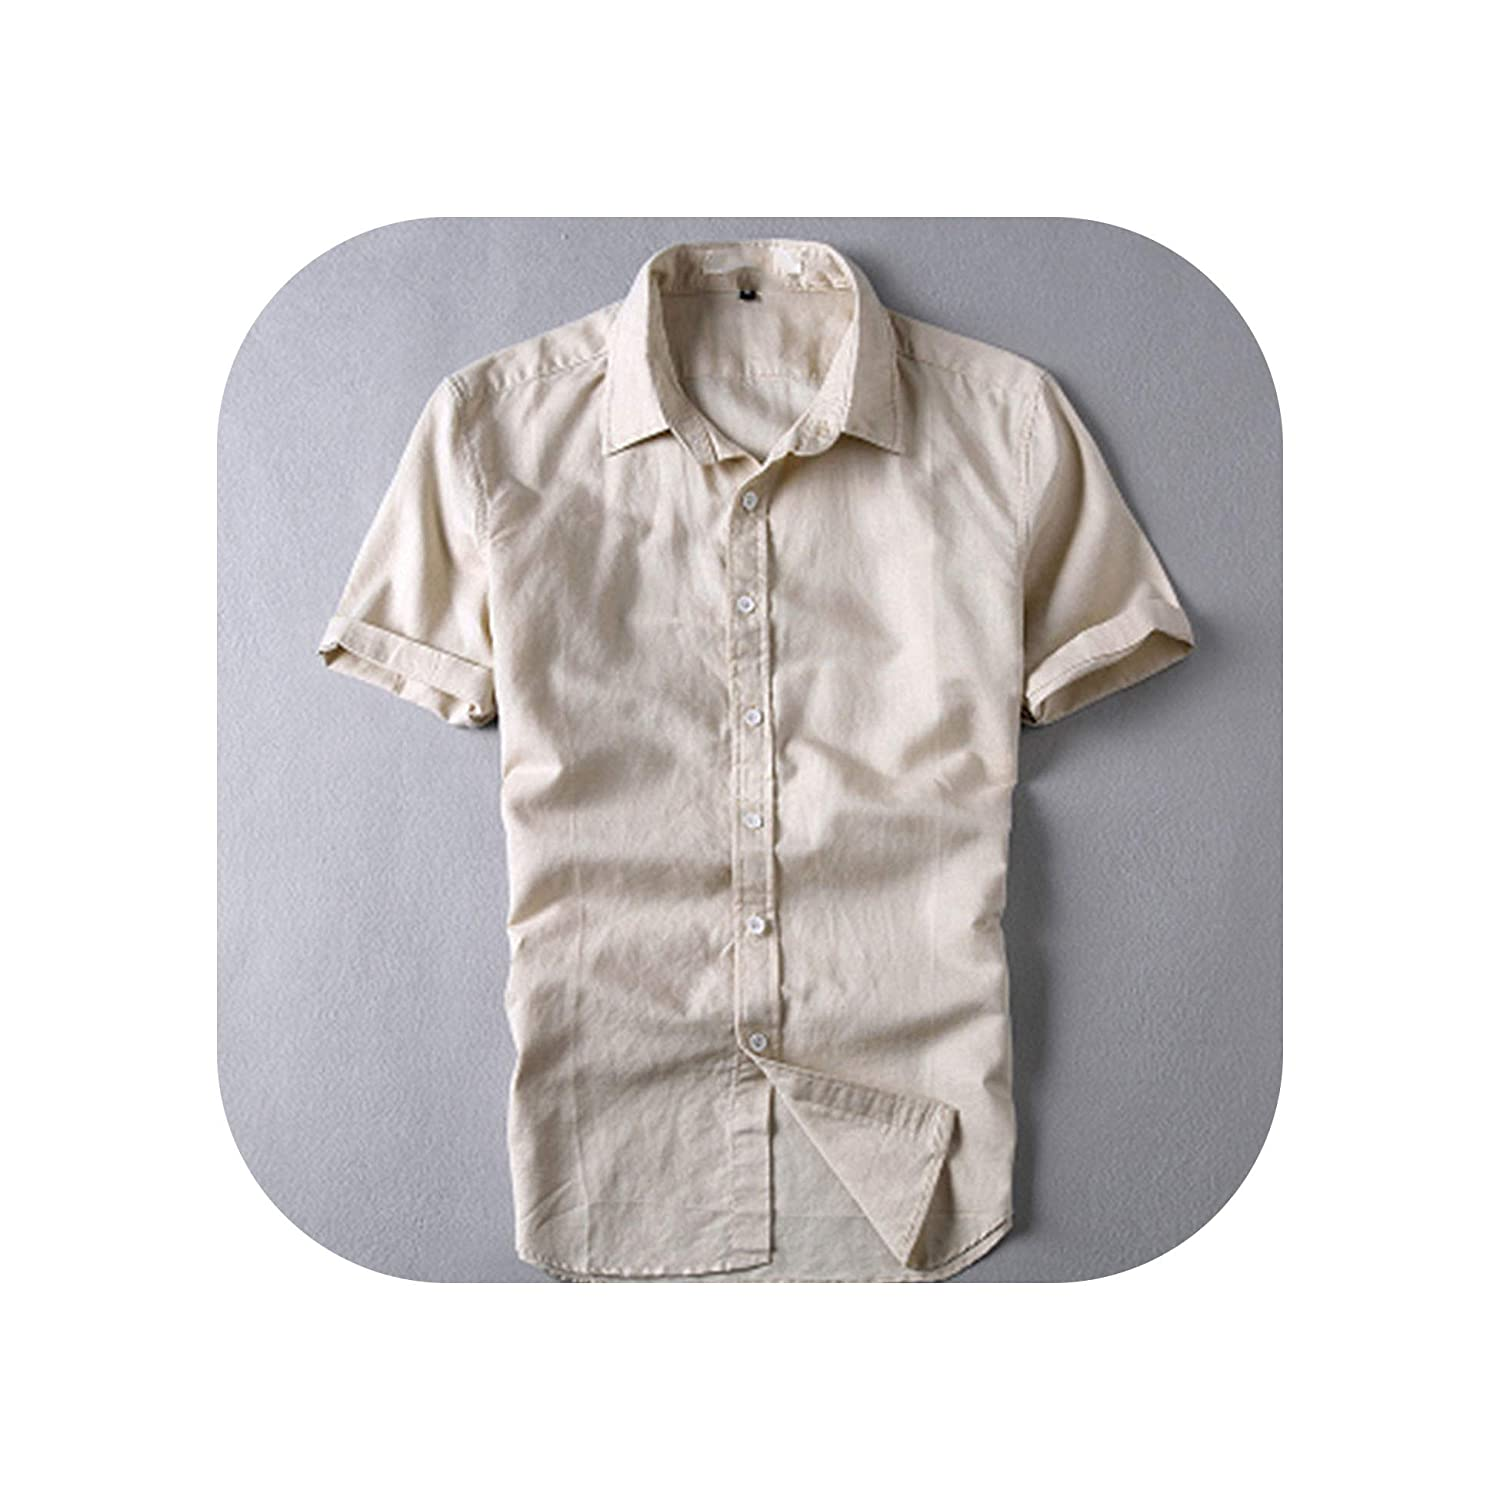 Trendy Style Linen Shirts Color Short Sleeved Slim Fit Collar Casual